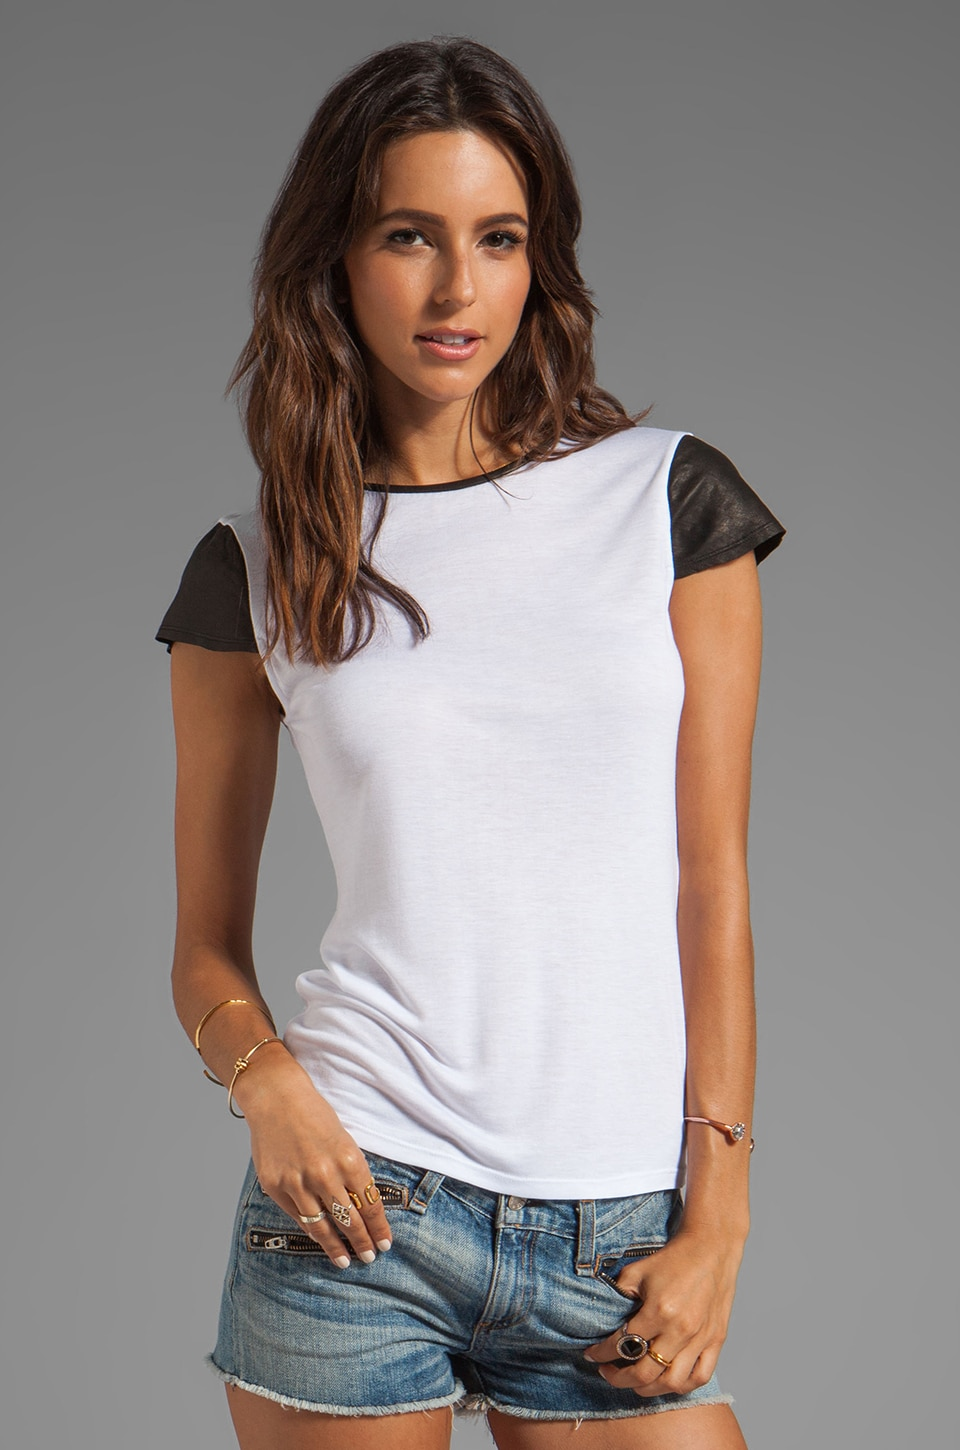 Alice + Olivia Anna Fitted Cap Sleeve Tee With Leather in White